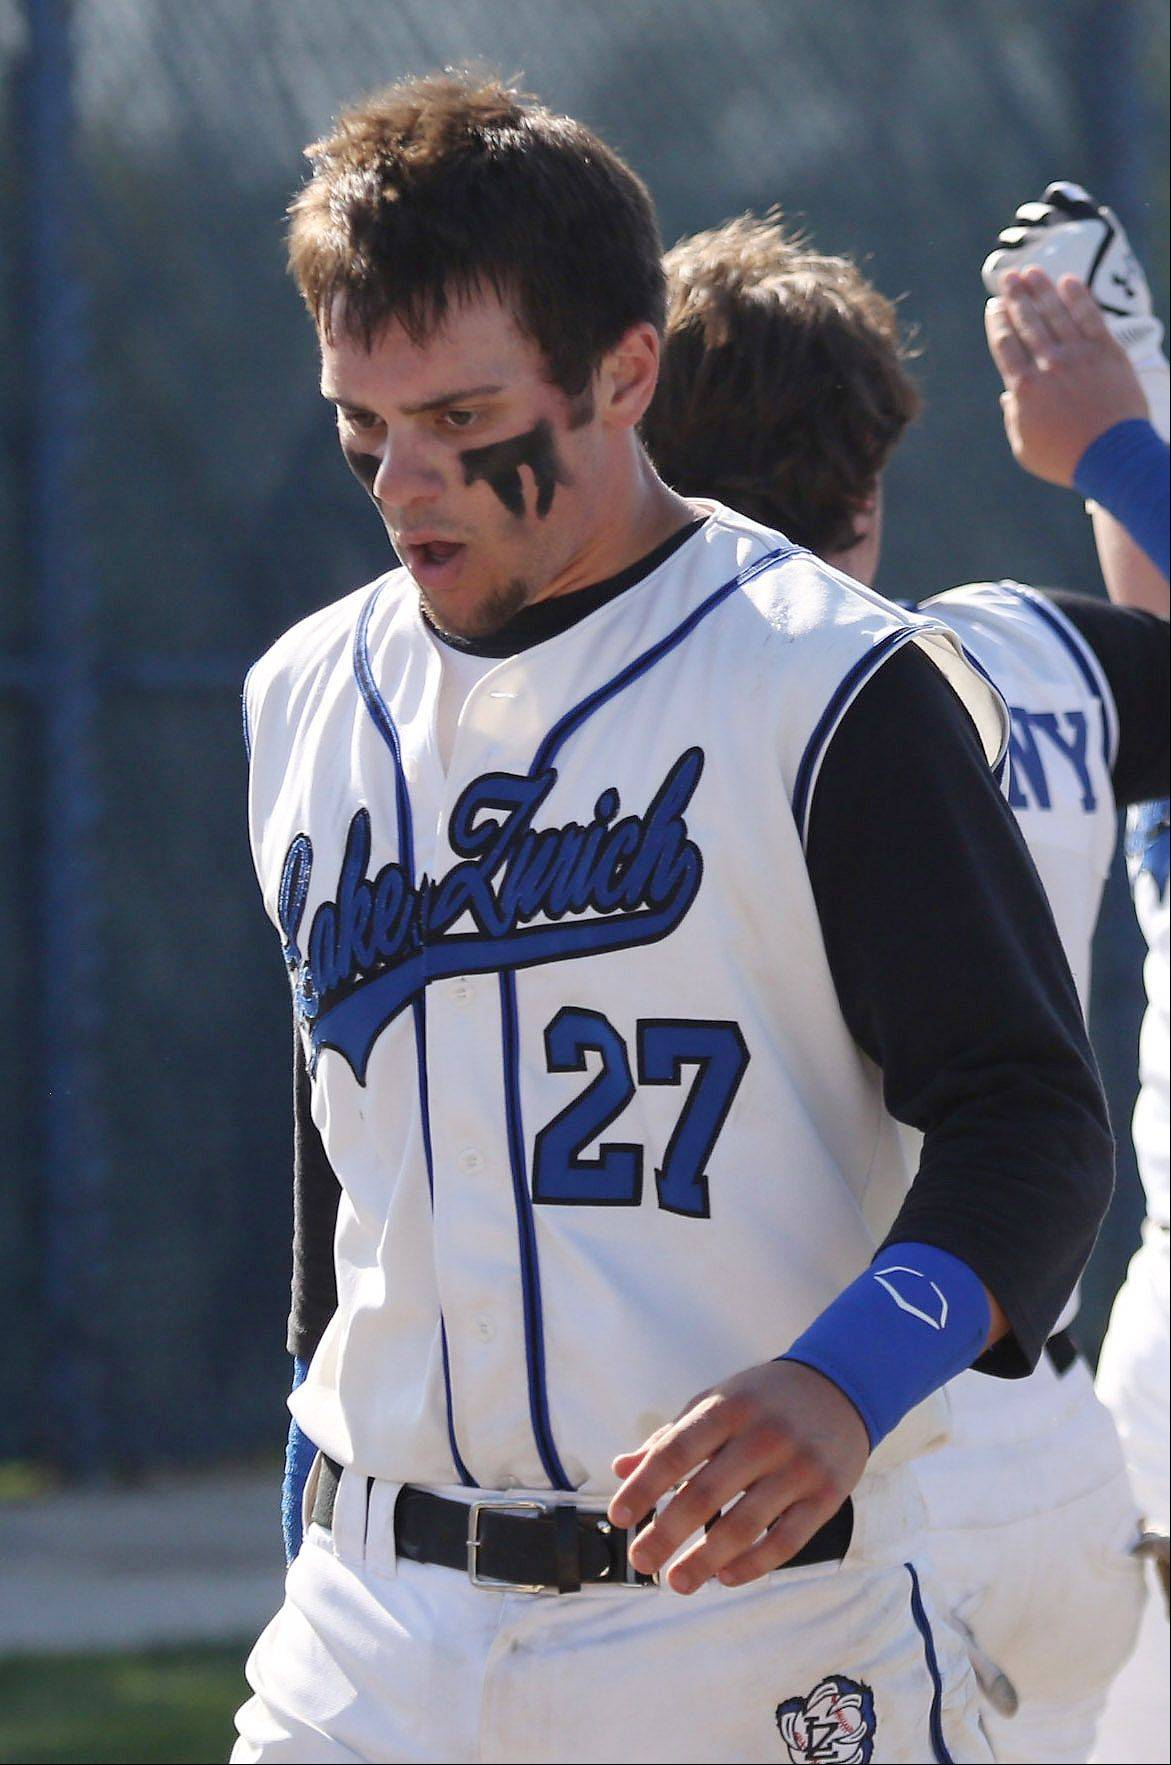 Gilbert R. Boucher II/gboucher@dailyherald.com � Lake Zurich catcher Anthony Drago during the Class 4A regional play-in baseball game between Prospect and Lake Zurich Monday at Lake Zurich High School.